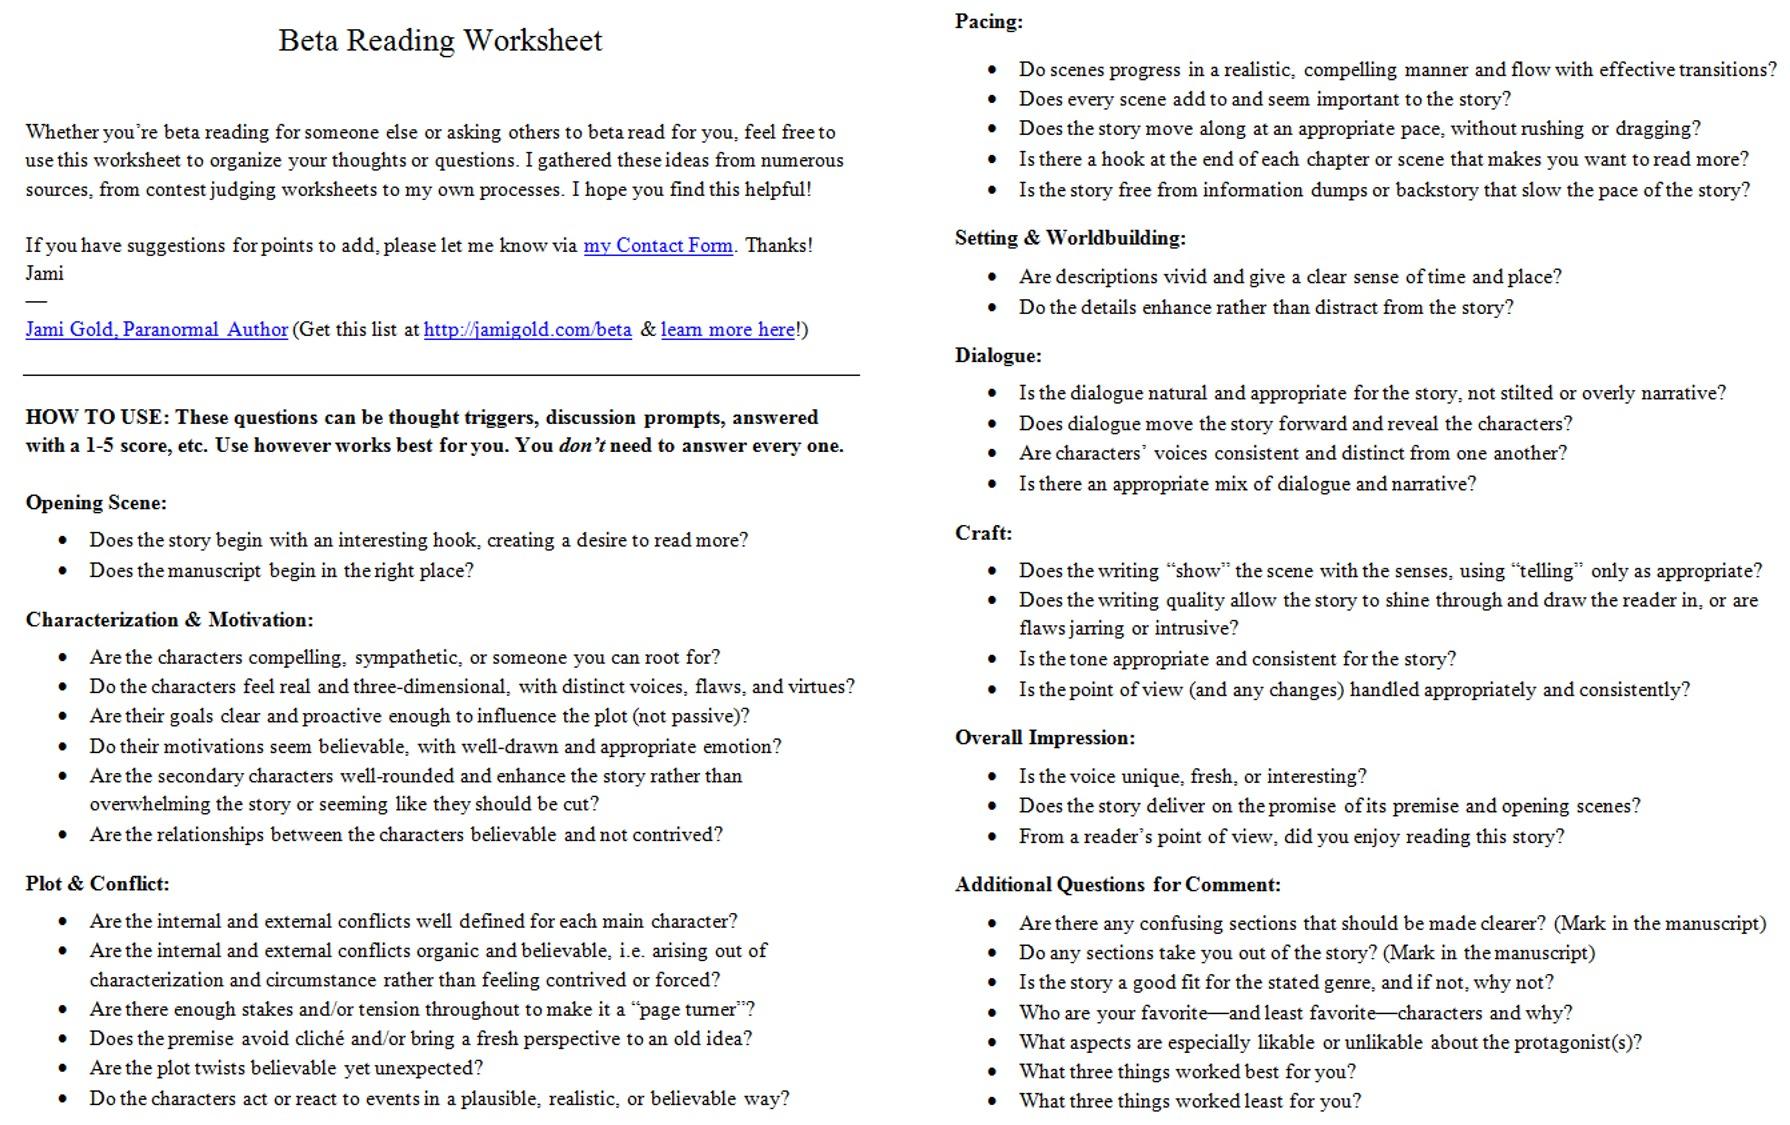 Weirdmailus  Fascinating Worksheets For Writers  Jami Gold Paranormal Author With Exciting Screen Shot Of The Twopage Beta Reading Worksheet With Beauteous Acap Financial Planning Worksheet Also Fourth Grade Grammar Worksheets In Addition Math Worksheets For Grade  Decimals And Main Idea Worksheets Middle School As Well As Simple Equations For Class  Worksheet Additionally Reflexive Pronoun Worksheets For Nd Grade From Jamigoldcom With Weirdmailus  Exciting Worksheets For Writers  Jami Gold Paranormal Author With Beauteous Screen Shot Of The Twopage Beta Reading Worksheet And Fascinating Acap Financial Planning Worksheet Also Fourth Grade Grammar Worksheets In Addition Math Worksheets For Grade  Decimals From Jamigoldcom